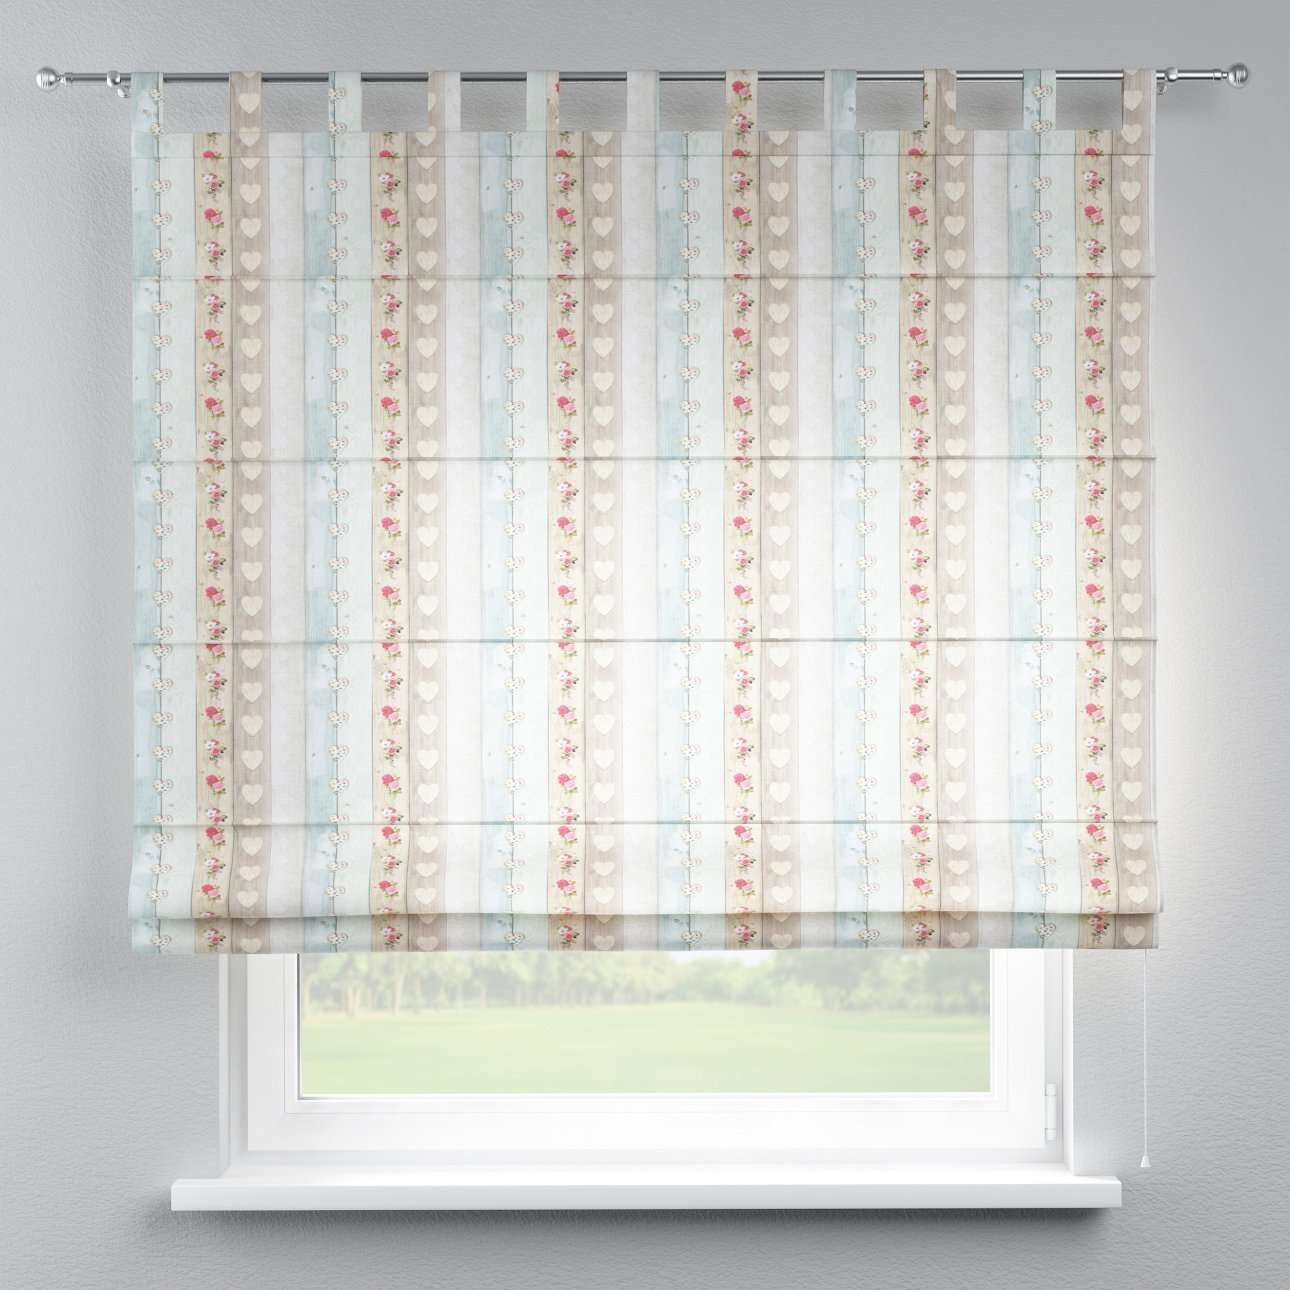 Foldegardin Verona<br/>Med stropper til gardinstang 80 x 170 cm fra kollektionen Ashley, Stof: 140-20